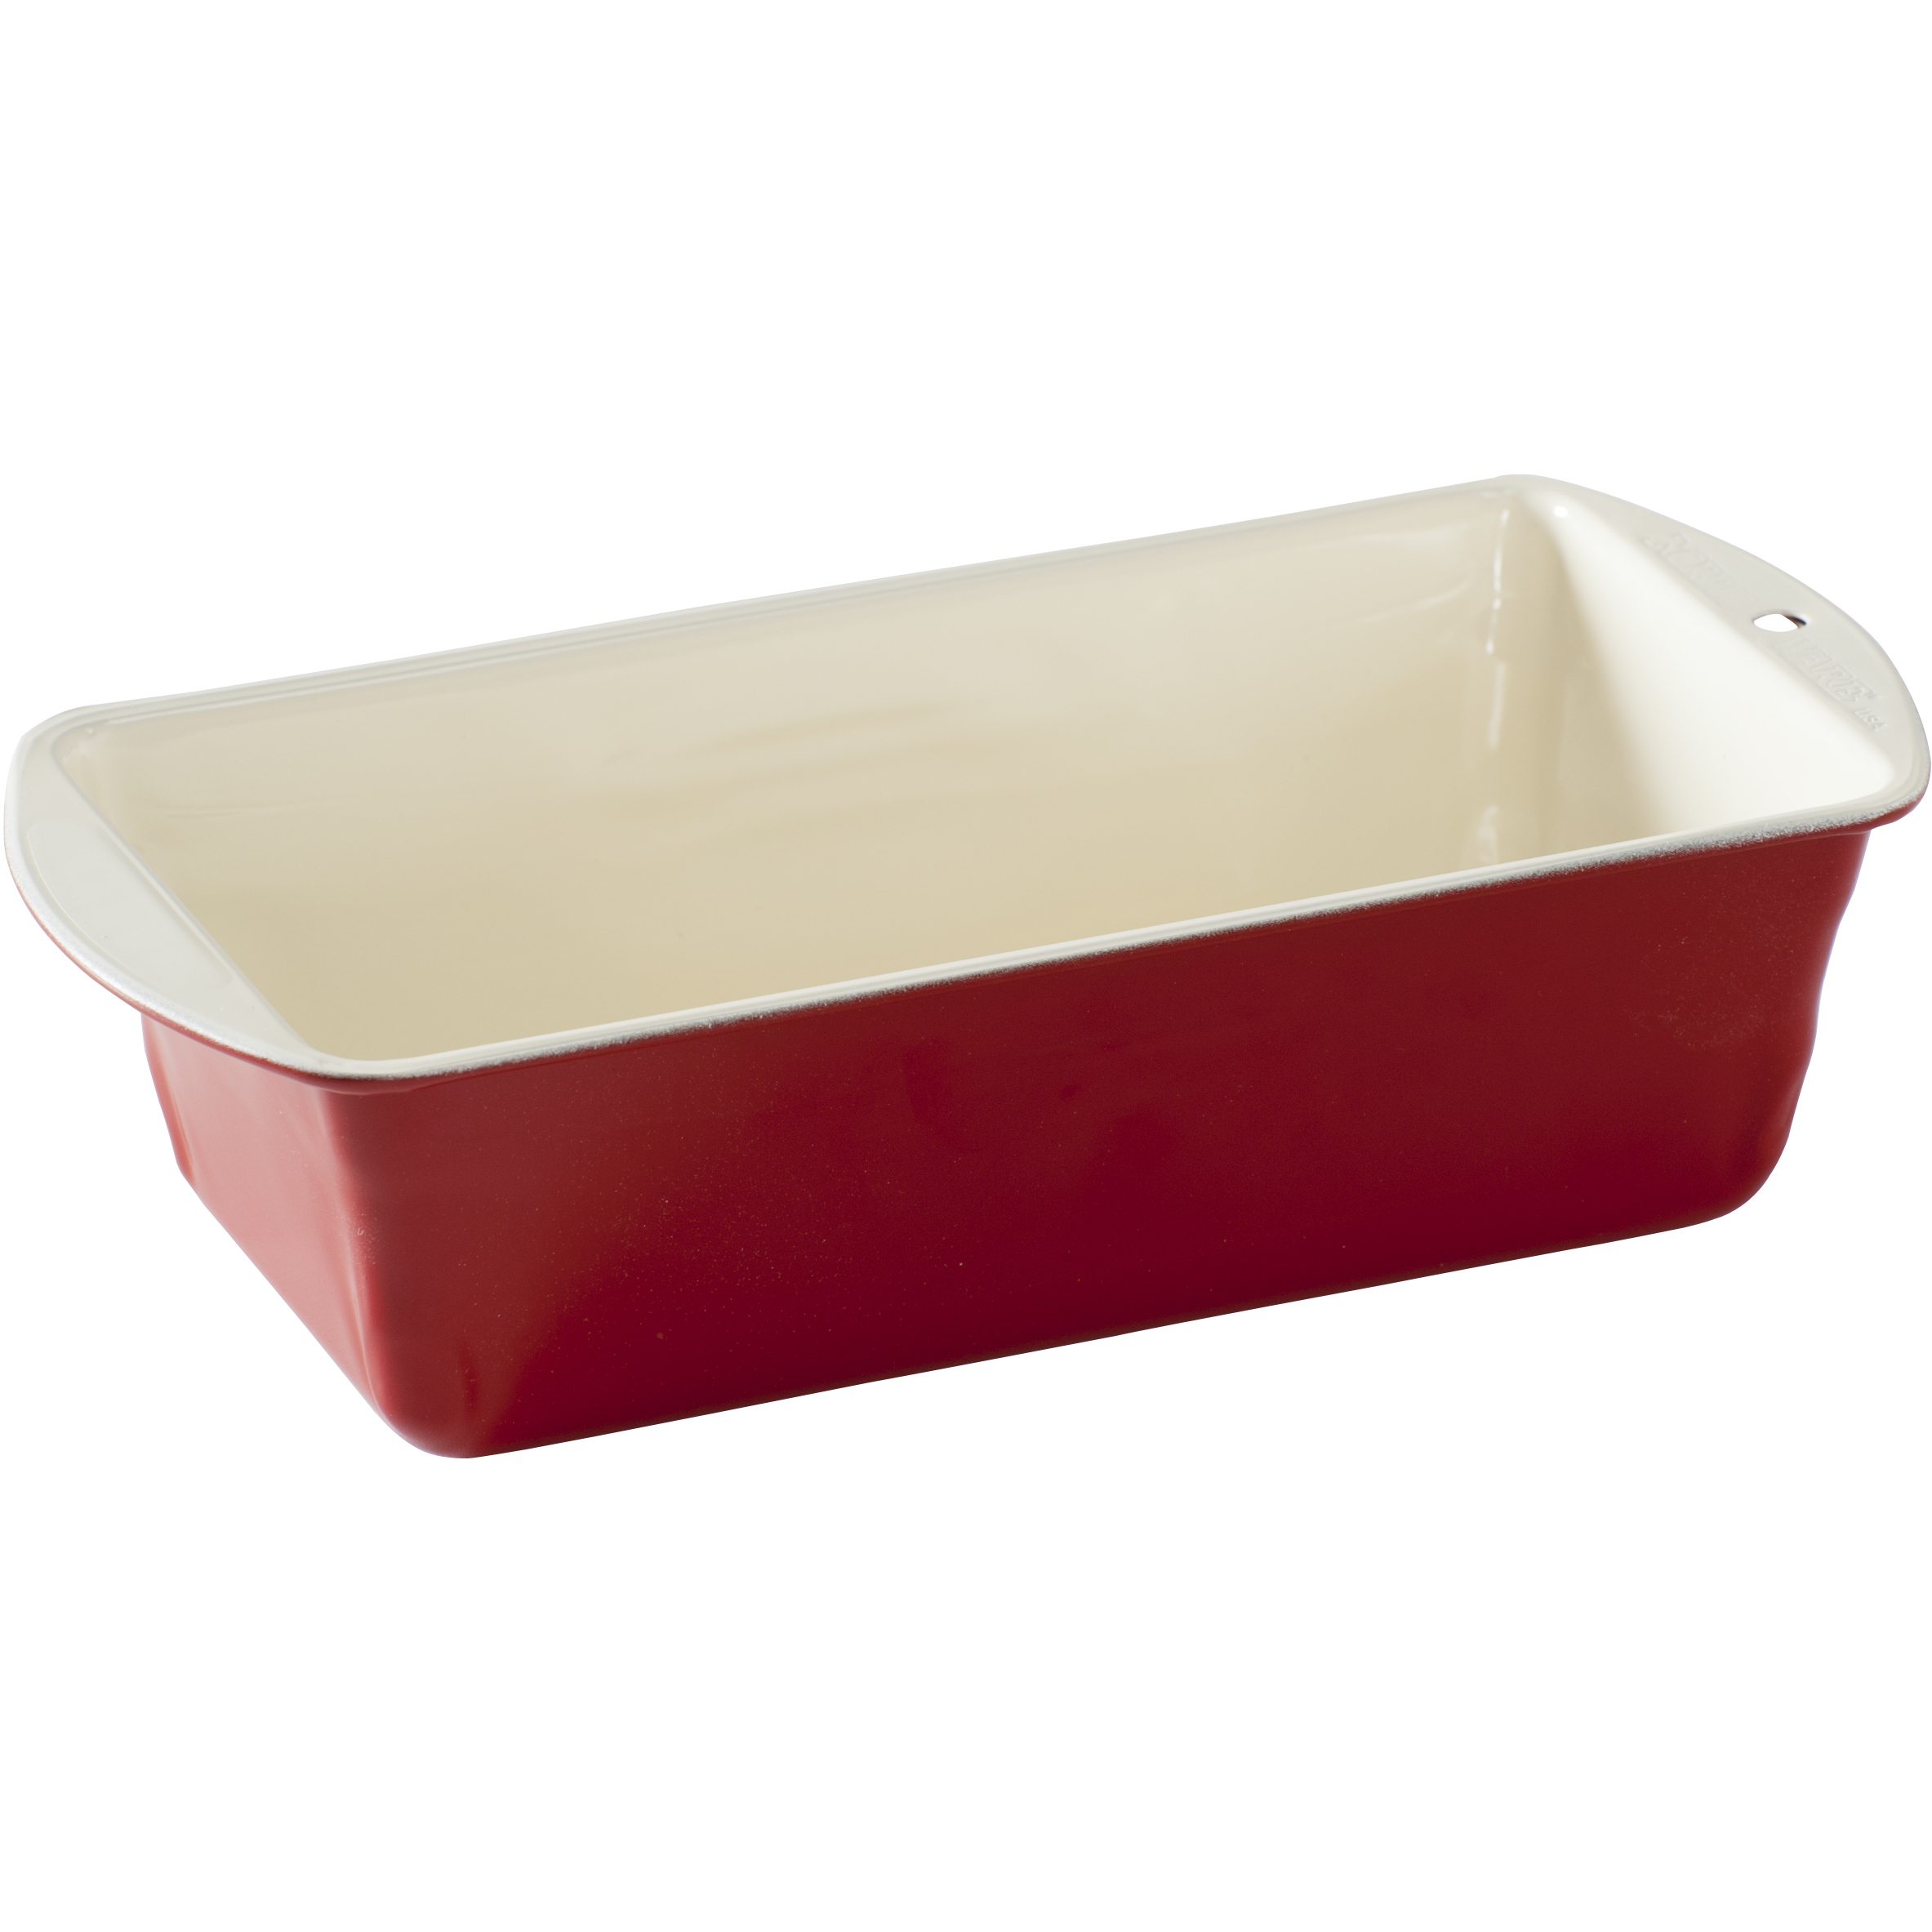 Nordic Ware Pro Form Colors Red Steel Bakeware 1 Pound Loaf Pan